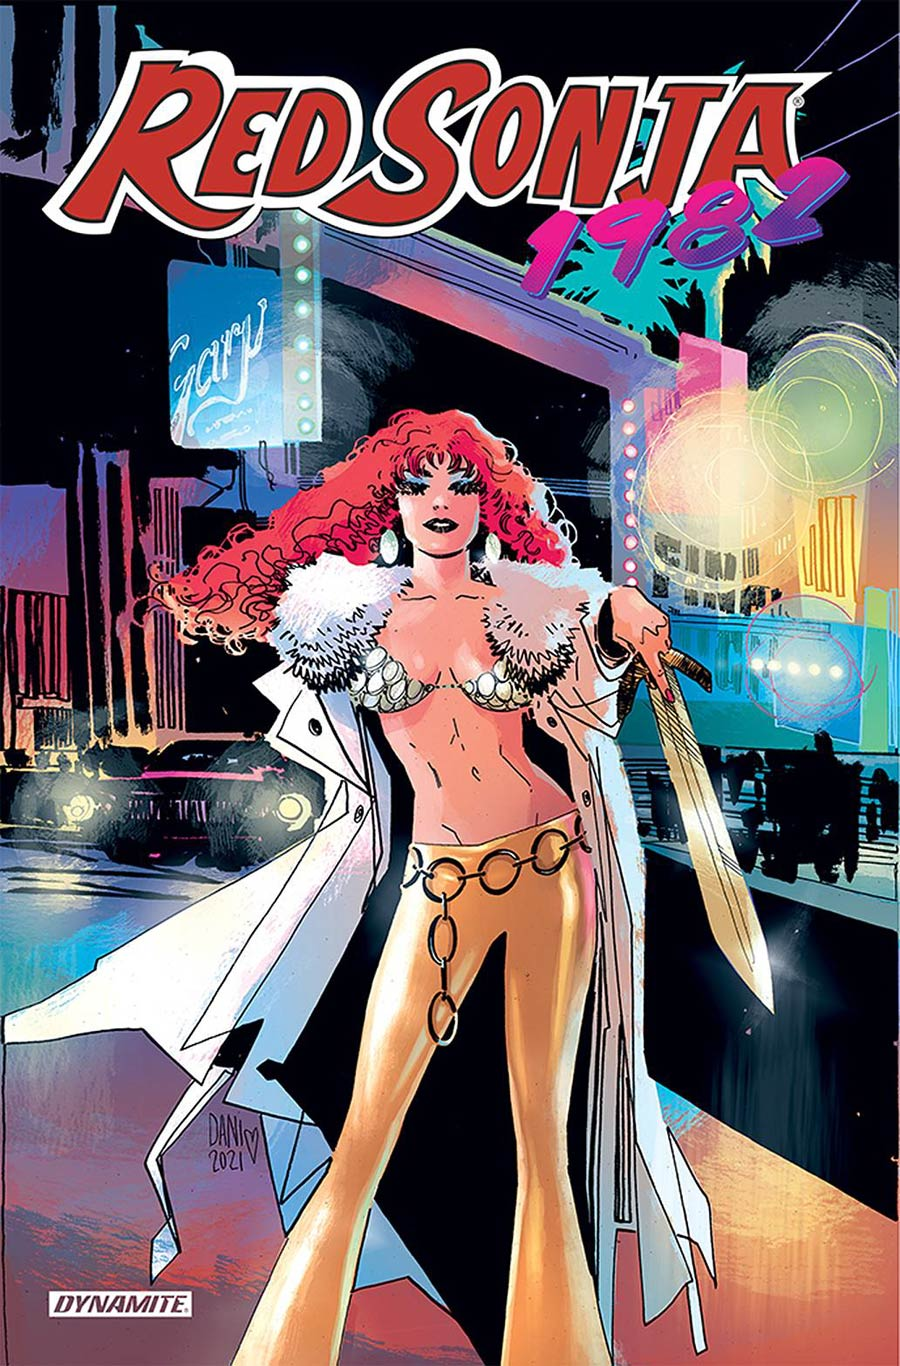 Red Sonja 1982 #1 (One Shot) Cover A Regular Dani Cover